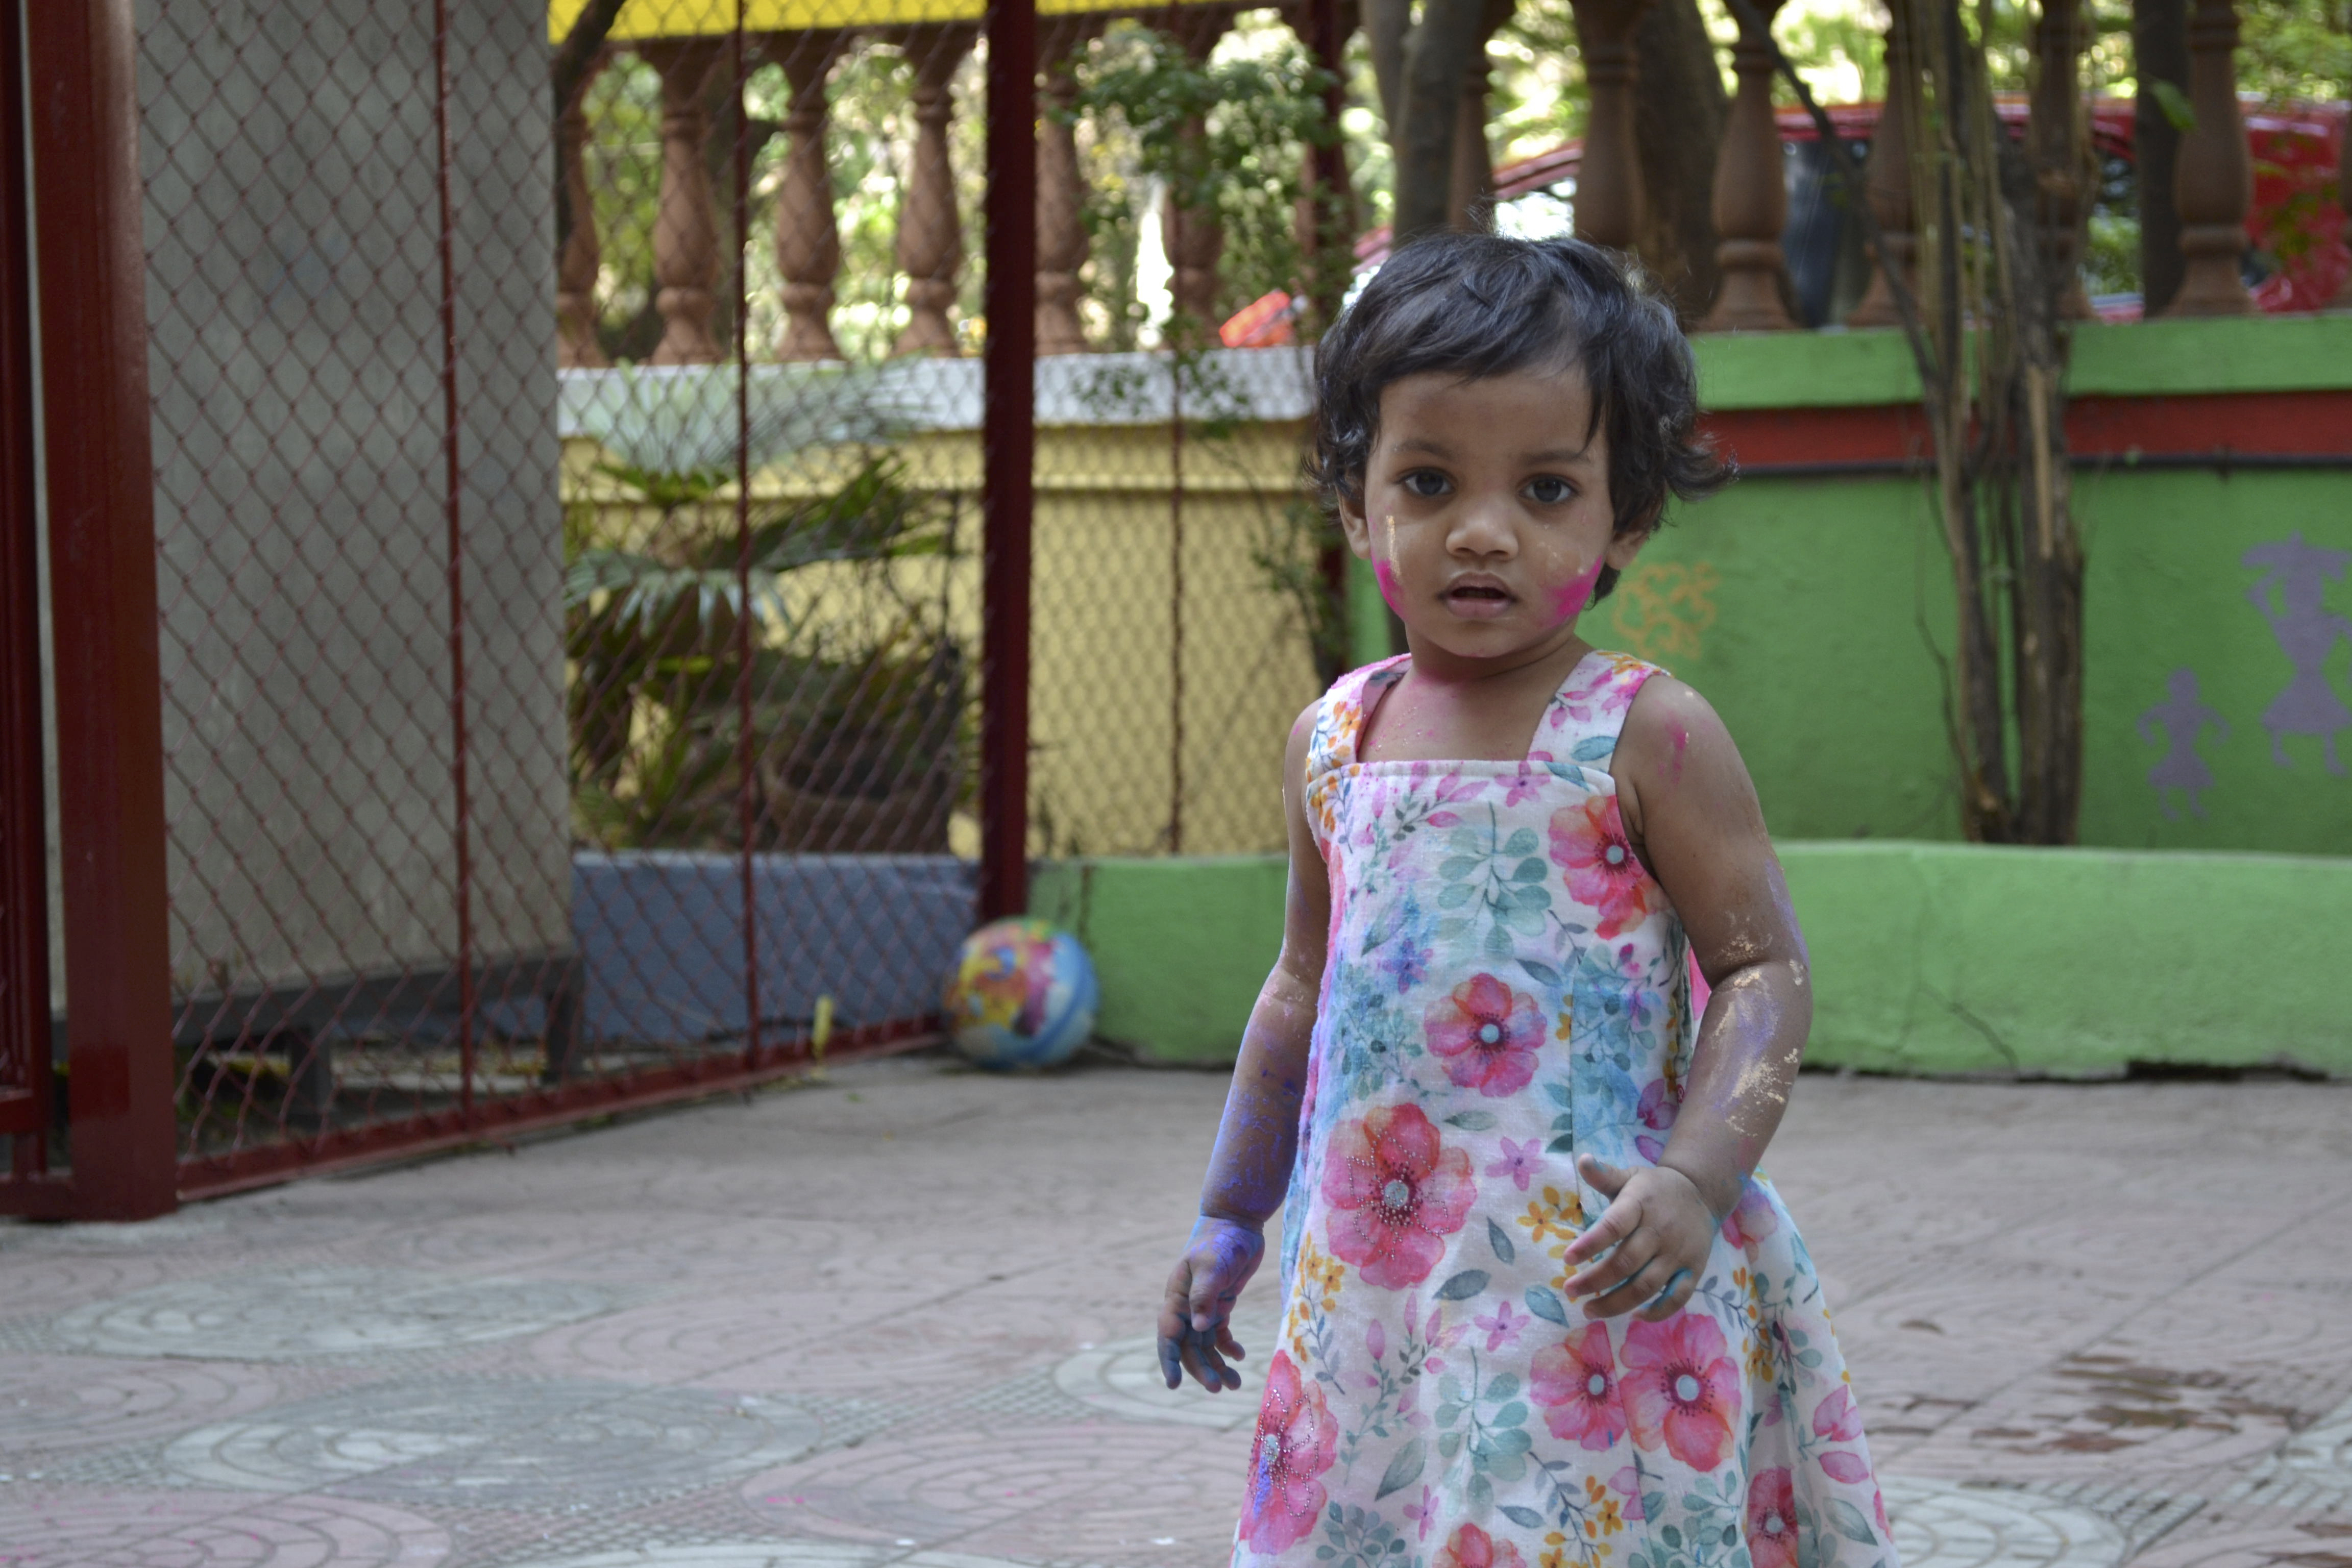 A young girl wearing a flower patterned dress is covered in paint, having played in a playground